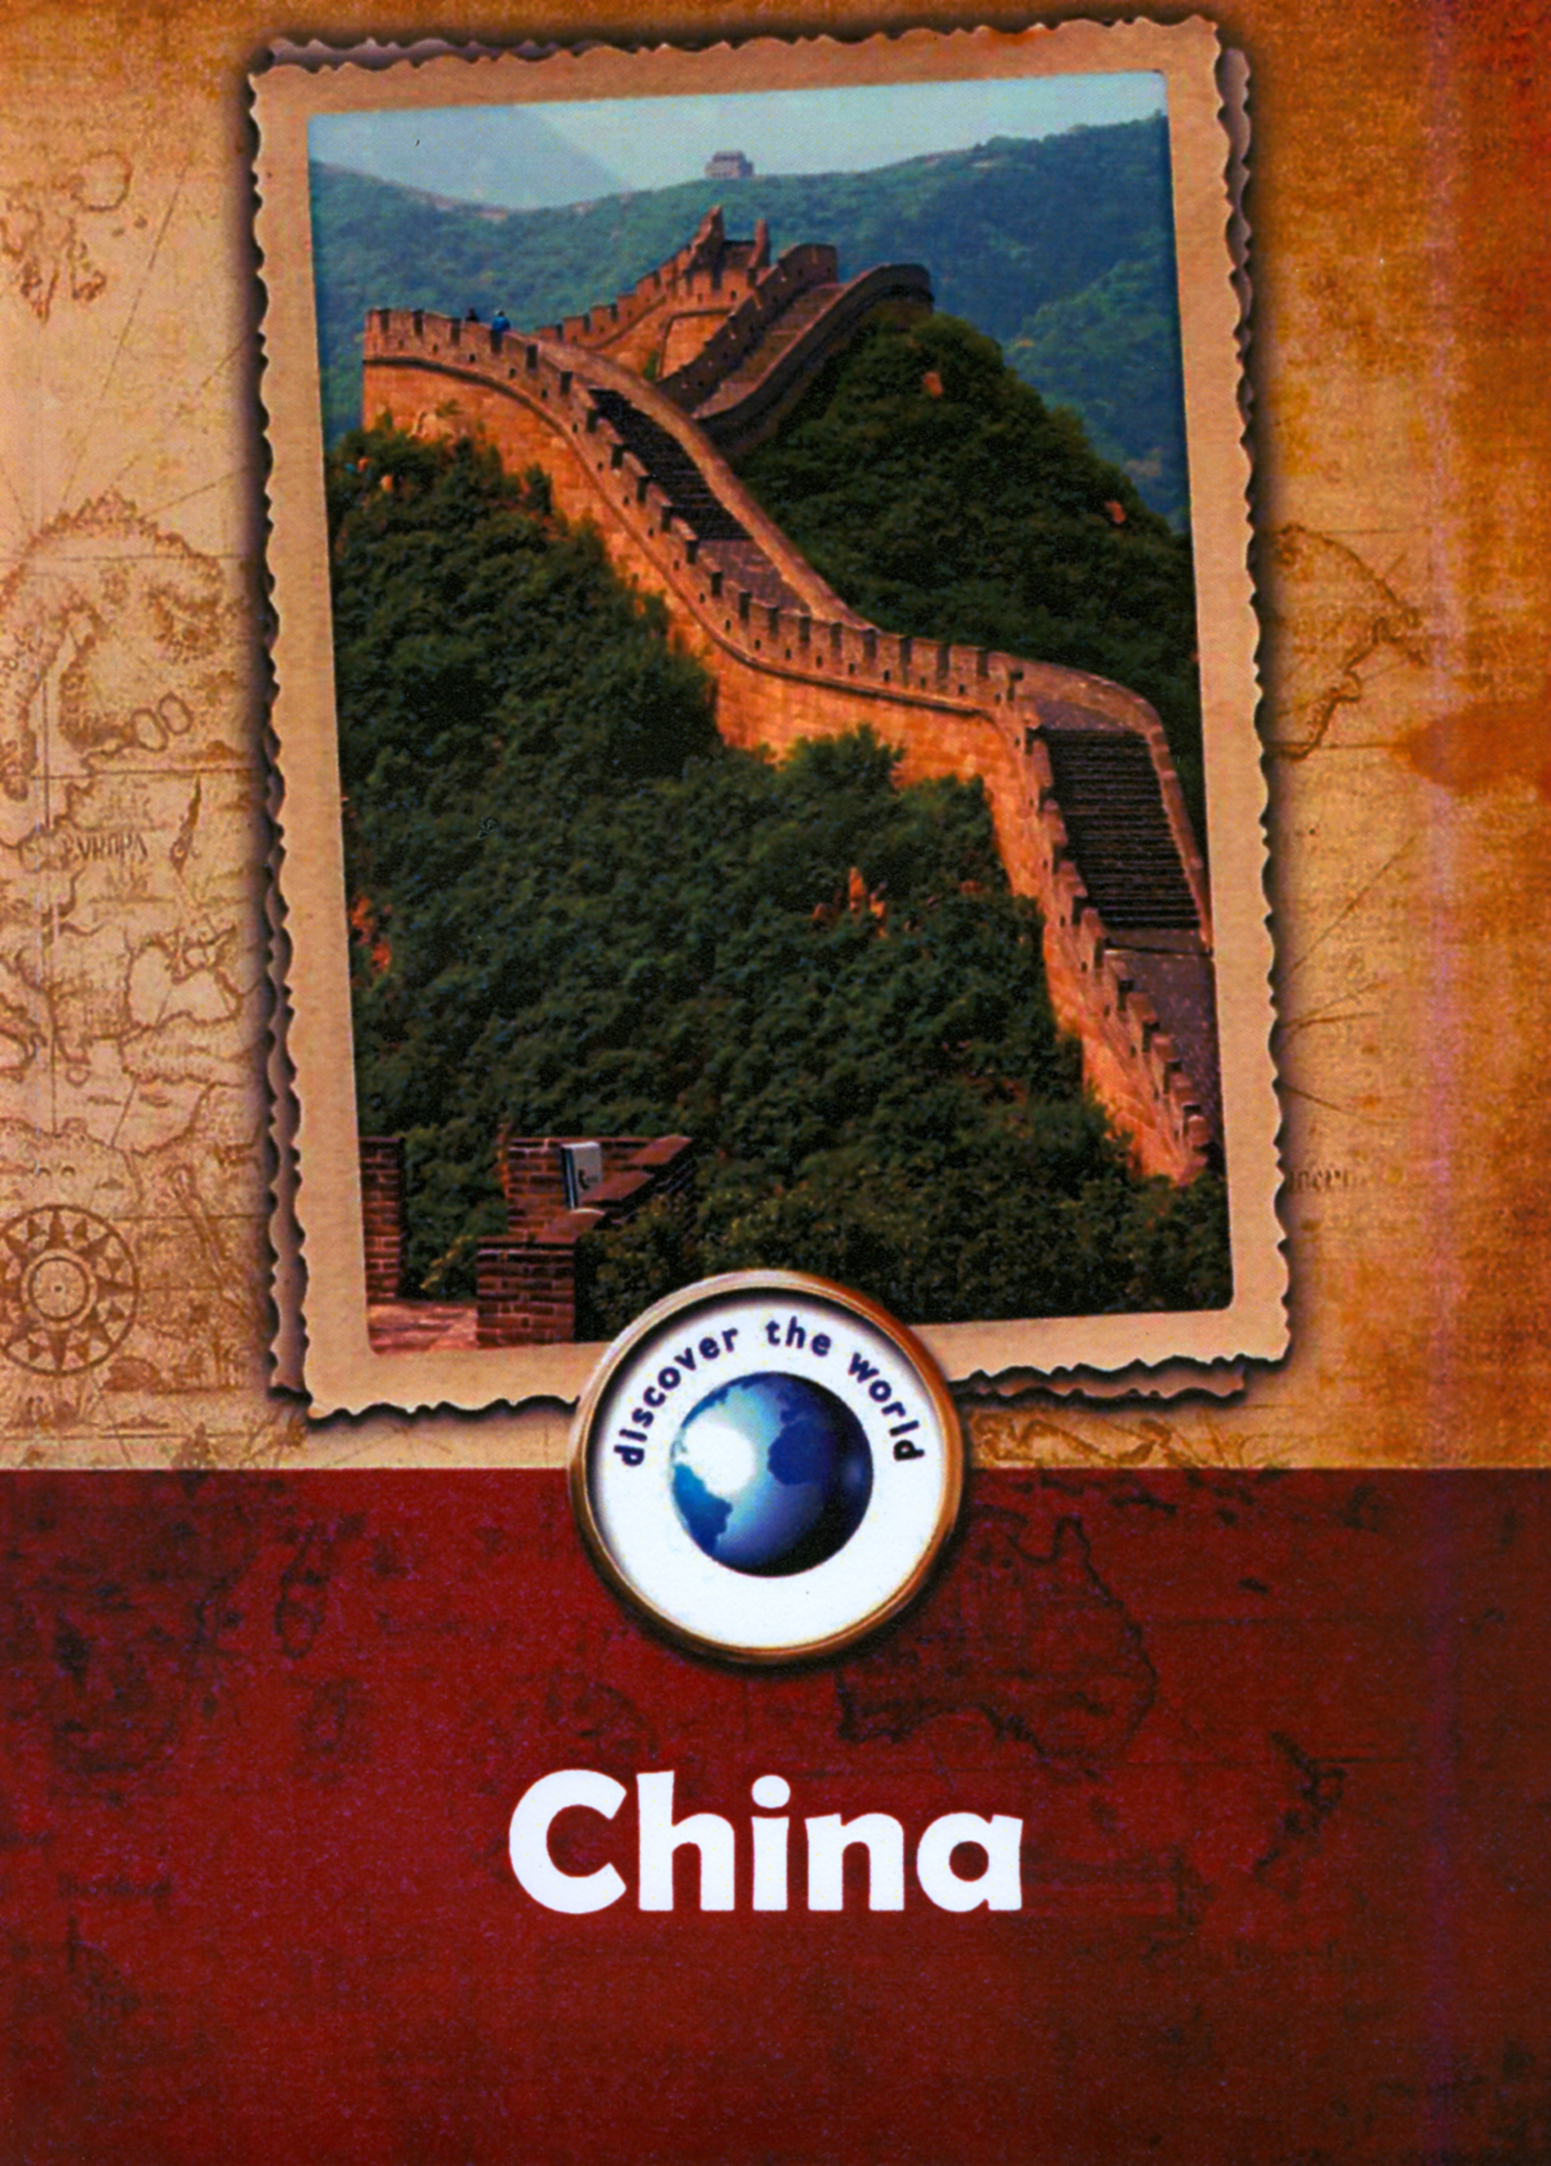 Discover the World: China